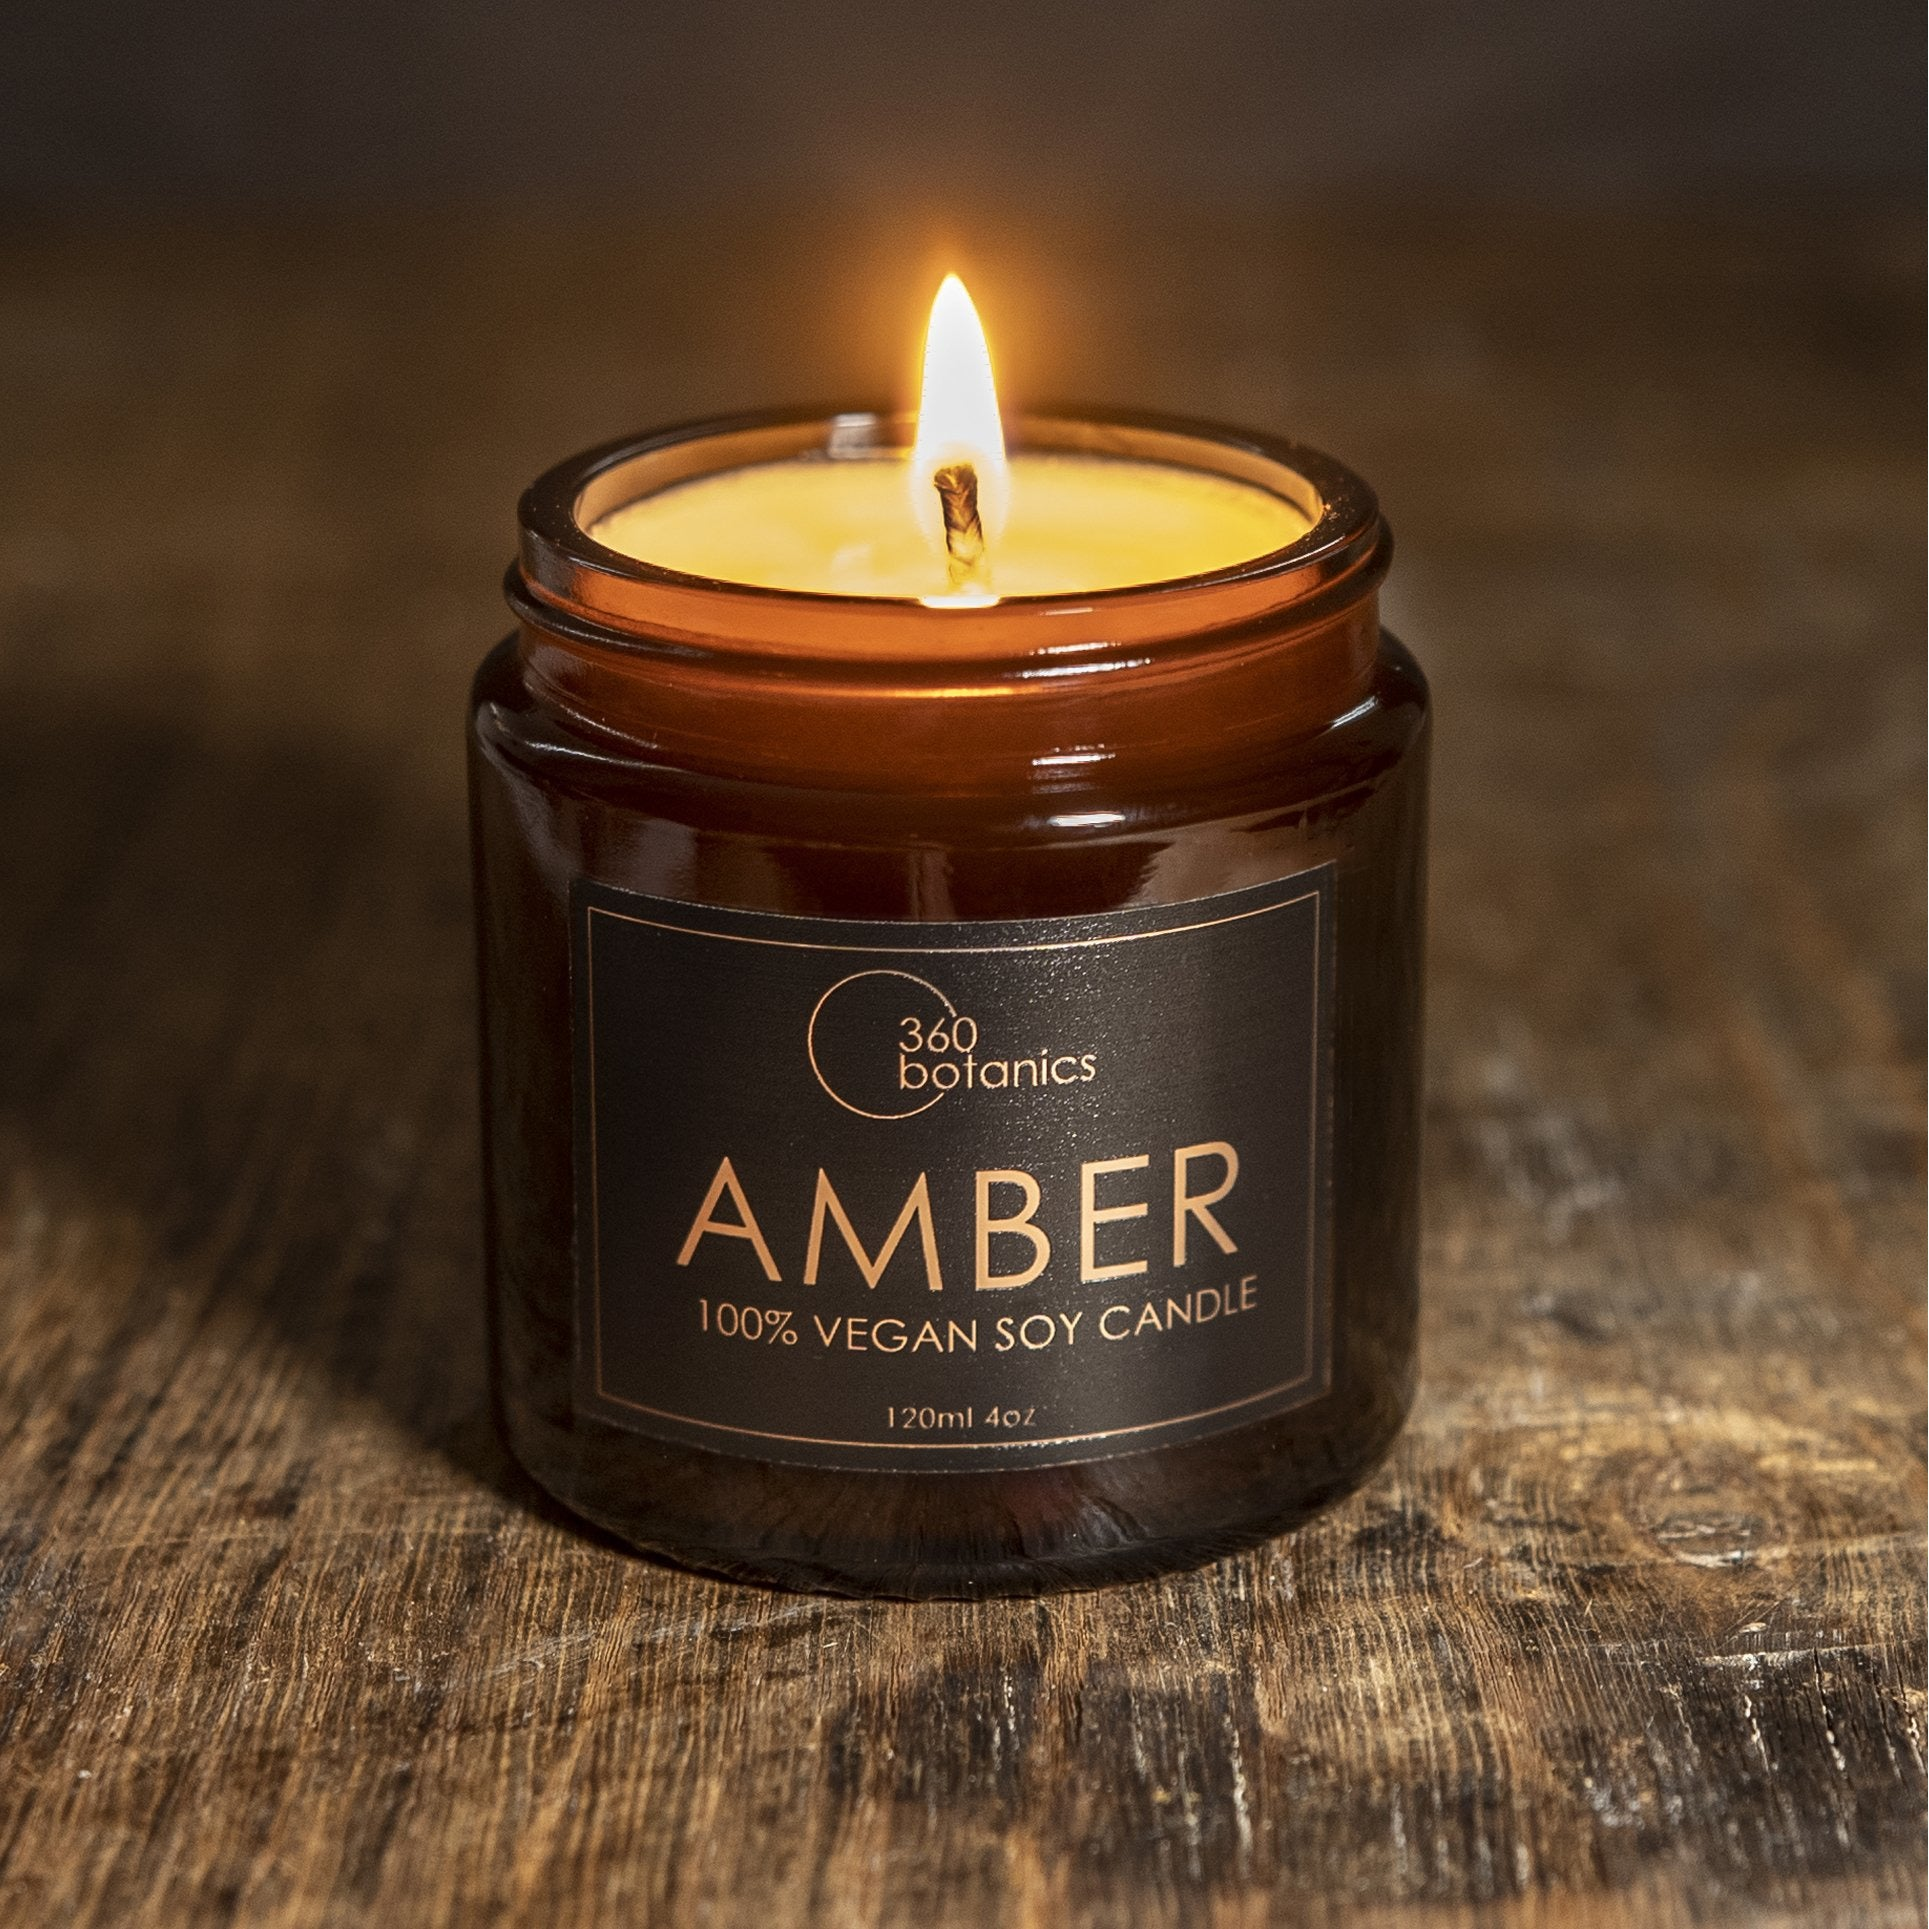 Image of Amber Candle photographed it on rustic wooden surface